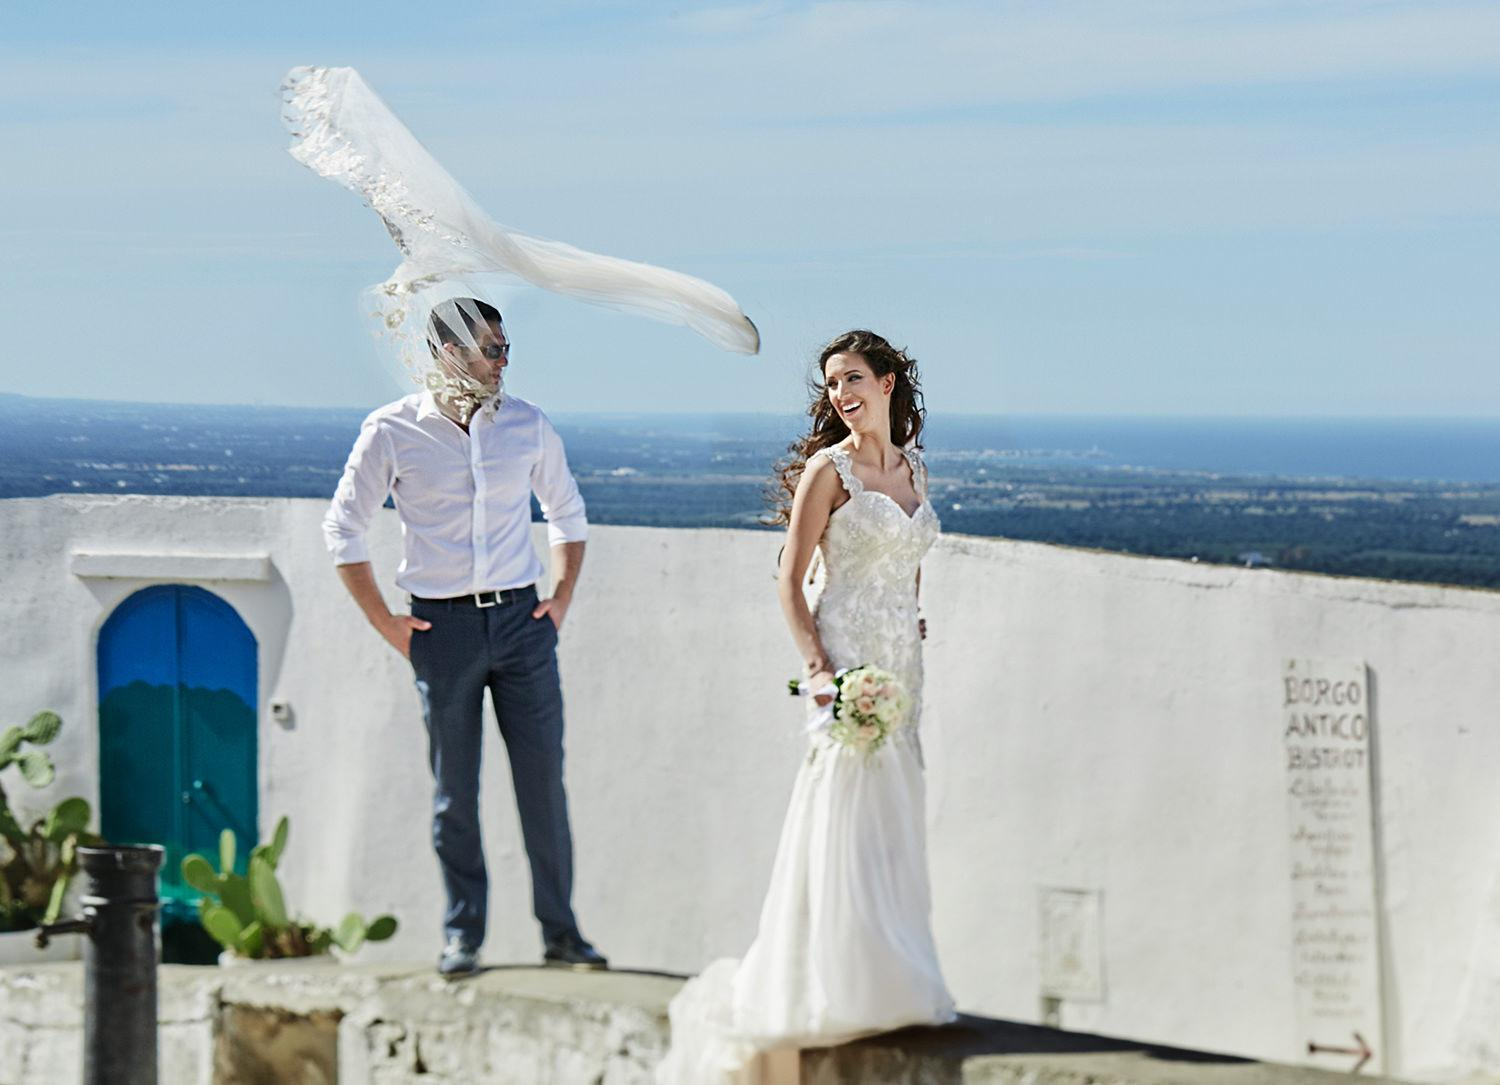 Destination wedding Italy, Professional wedding photography,